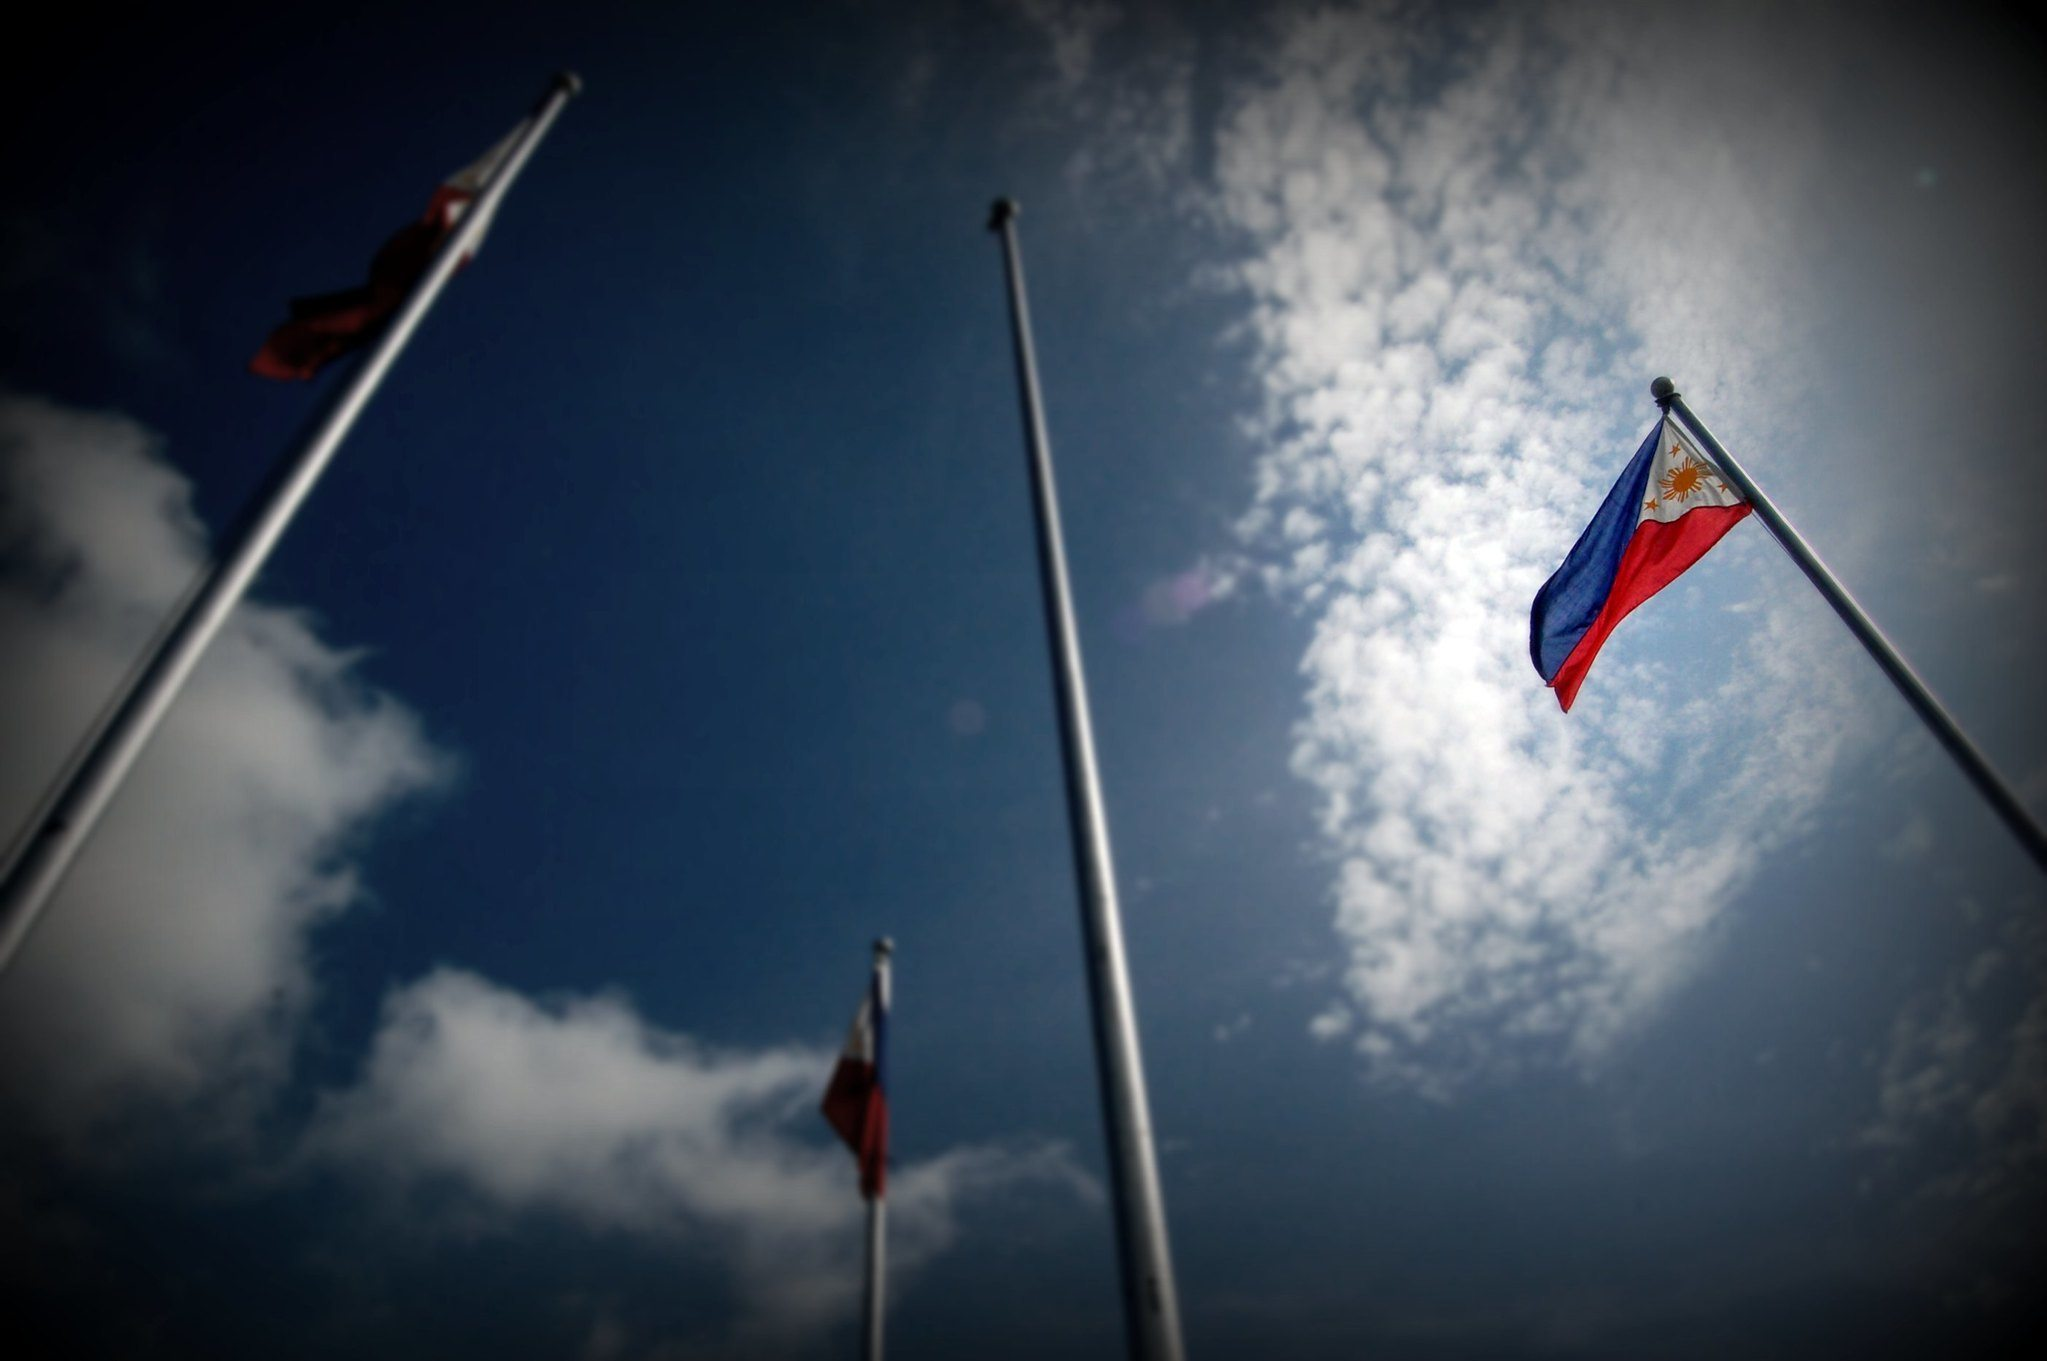 List of Philippines Public Holidays in 2020